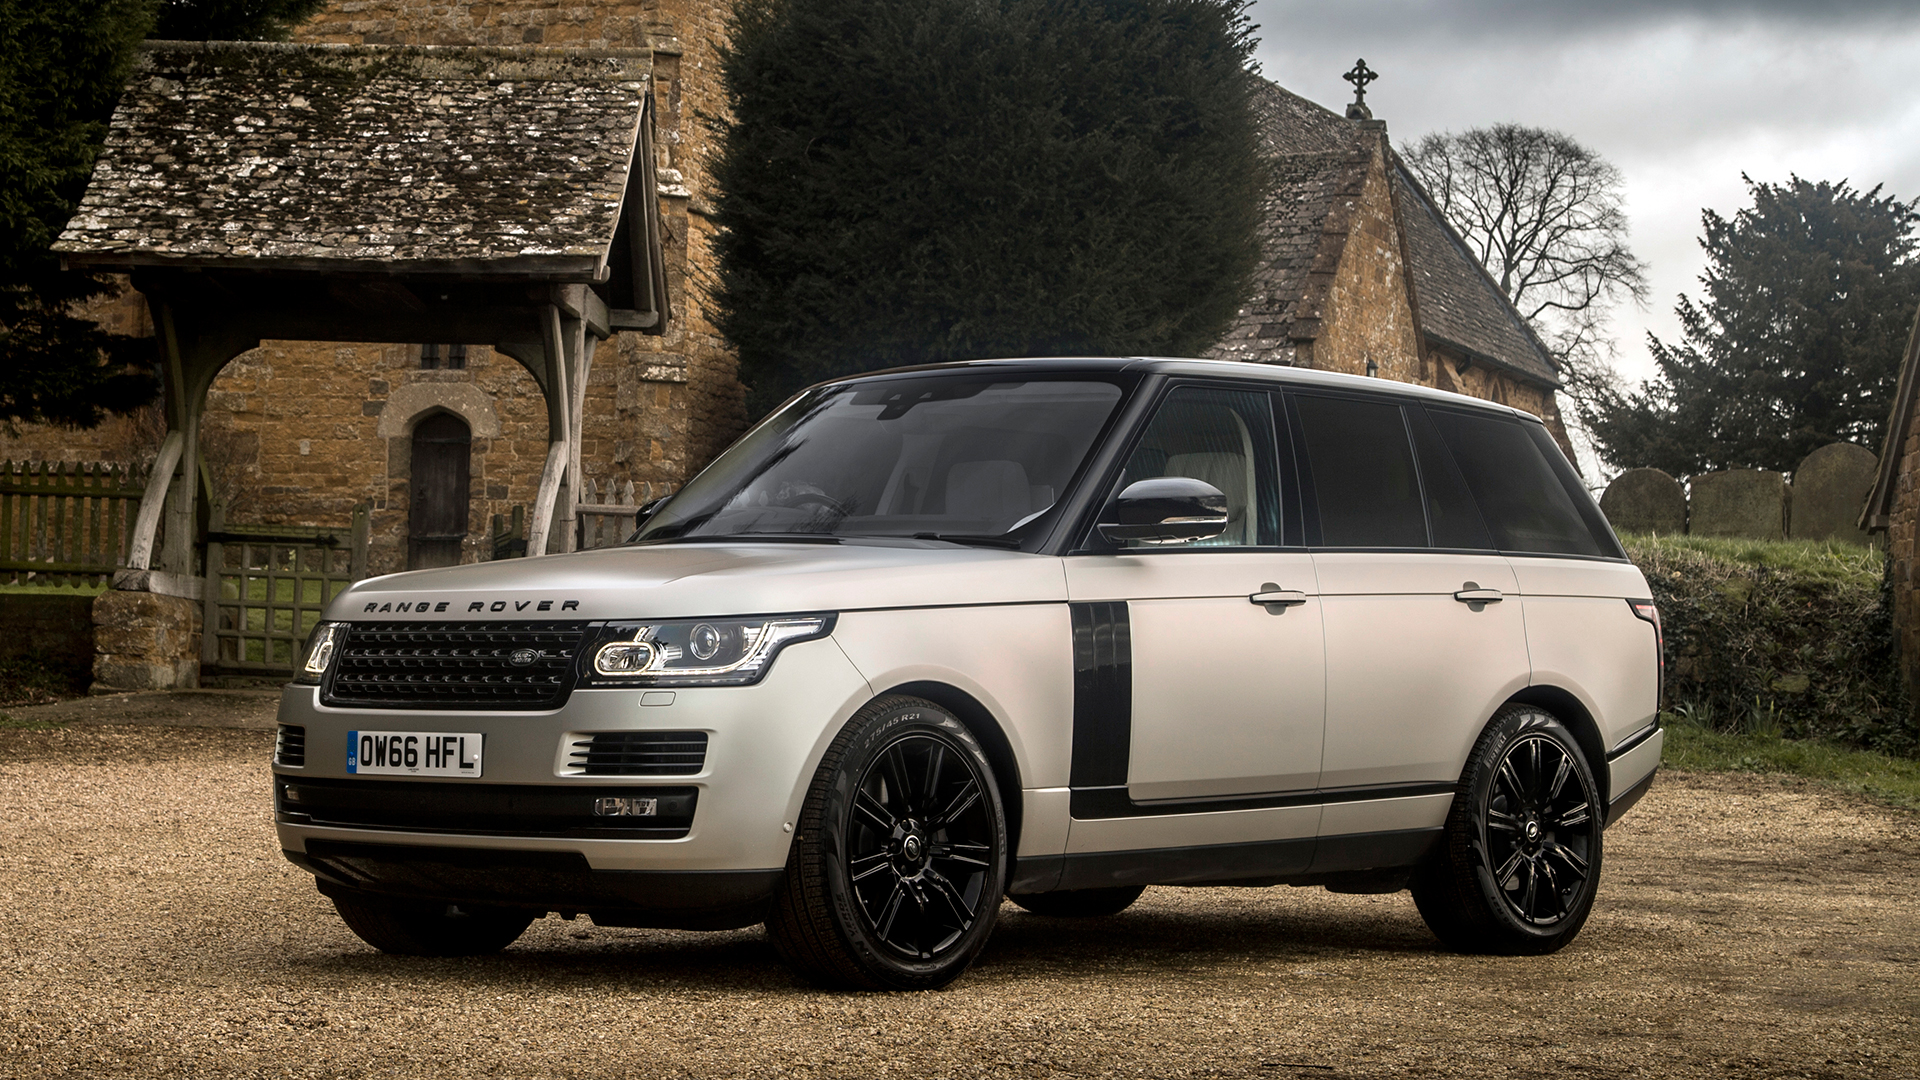 New Land Rover Range Rover Review & Deals